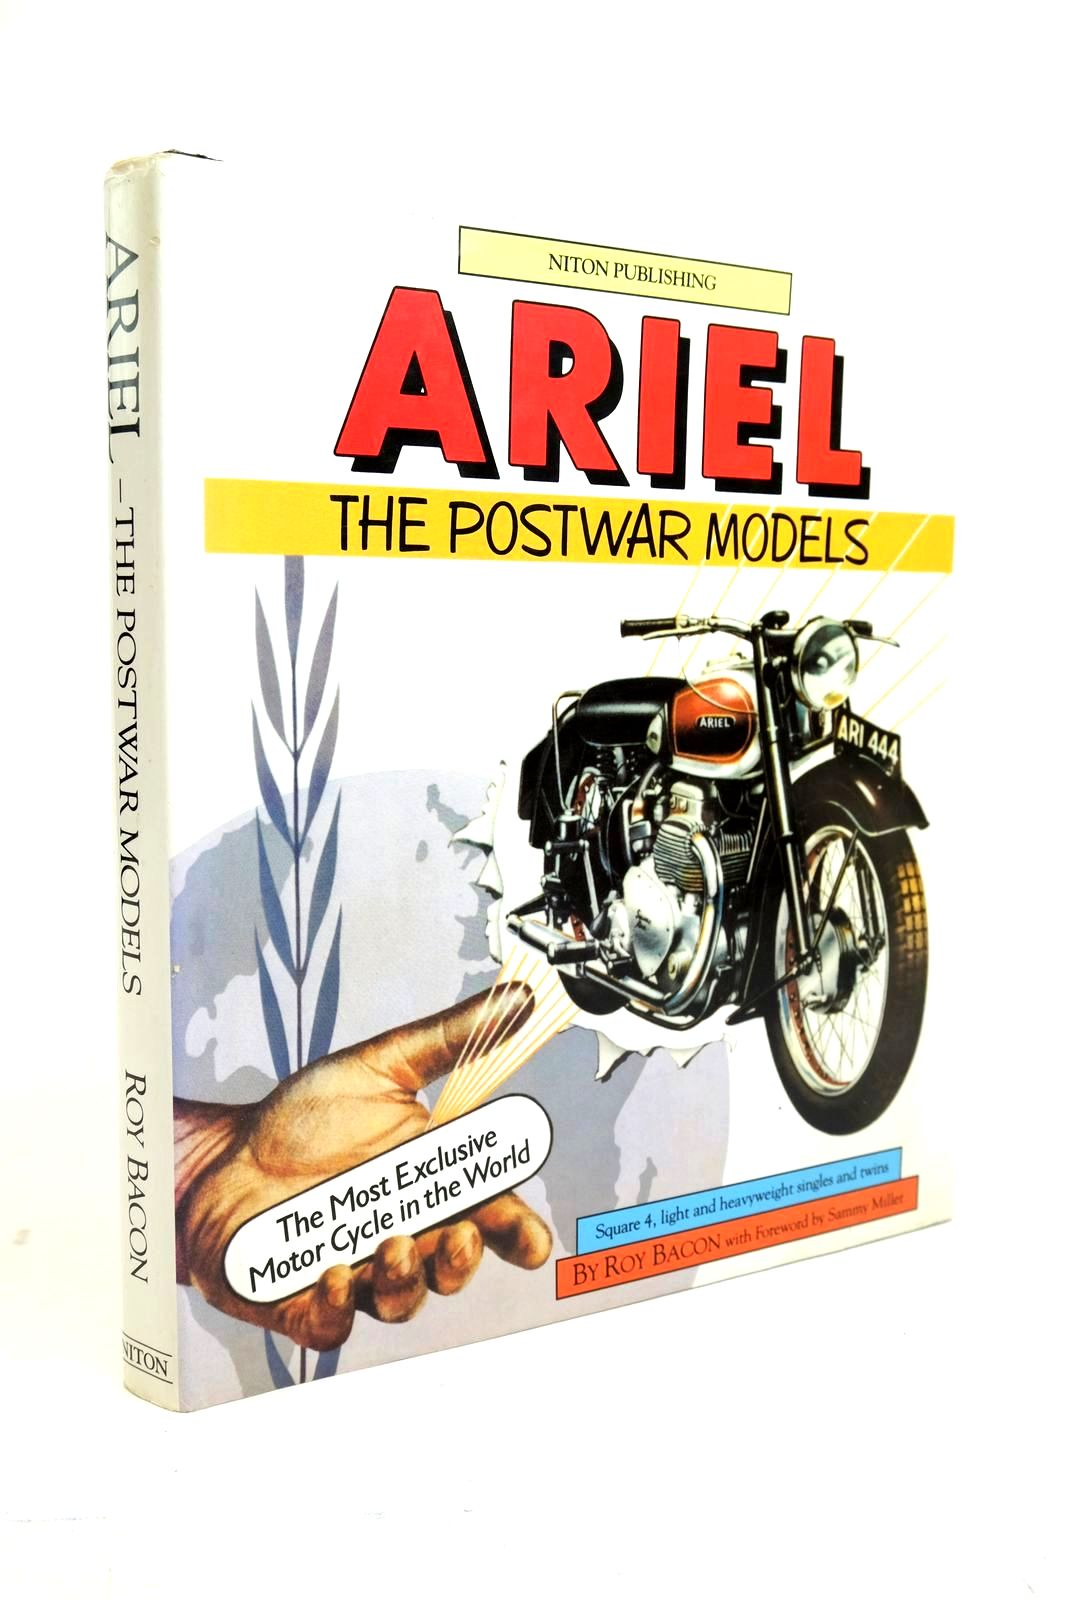 Photo of ARIEL THE POSTWAR MODELS written by Bacon, Roy published by Niton Publishing (STOCK CODE: 1321183)  for sale by Stella & Rose's Books